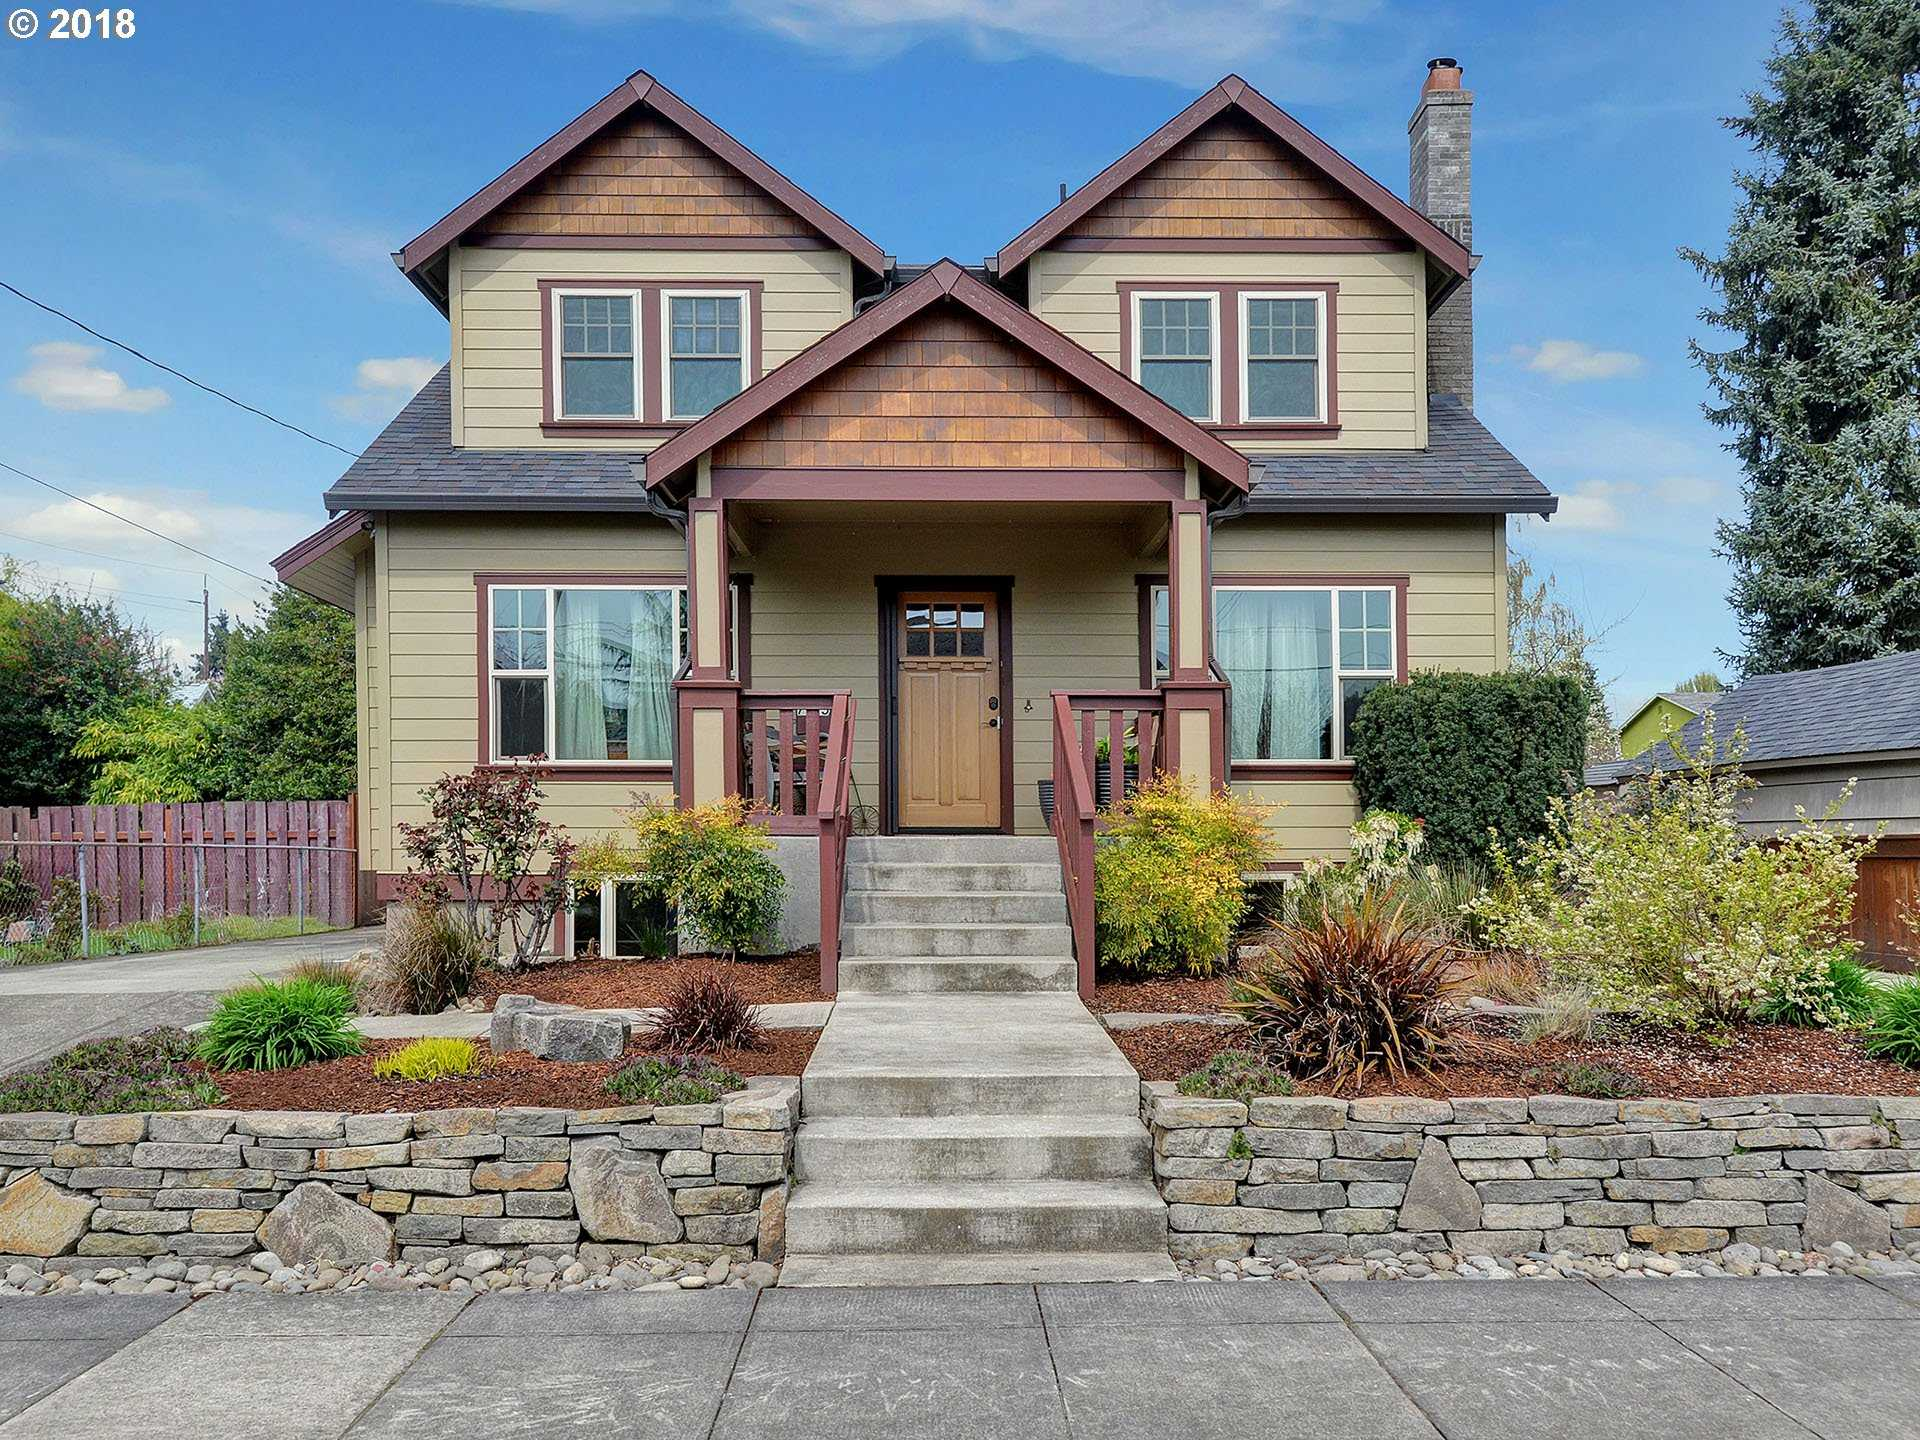 $1,049,000 - 5Br/4Ba -  for Sale in Sellwood/moreland, Portland